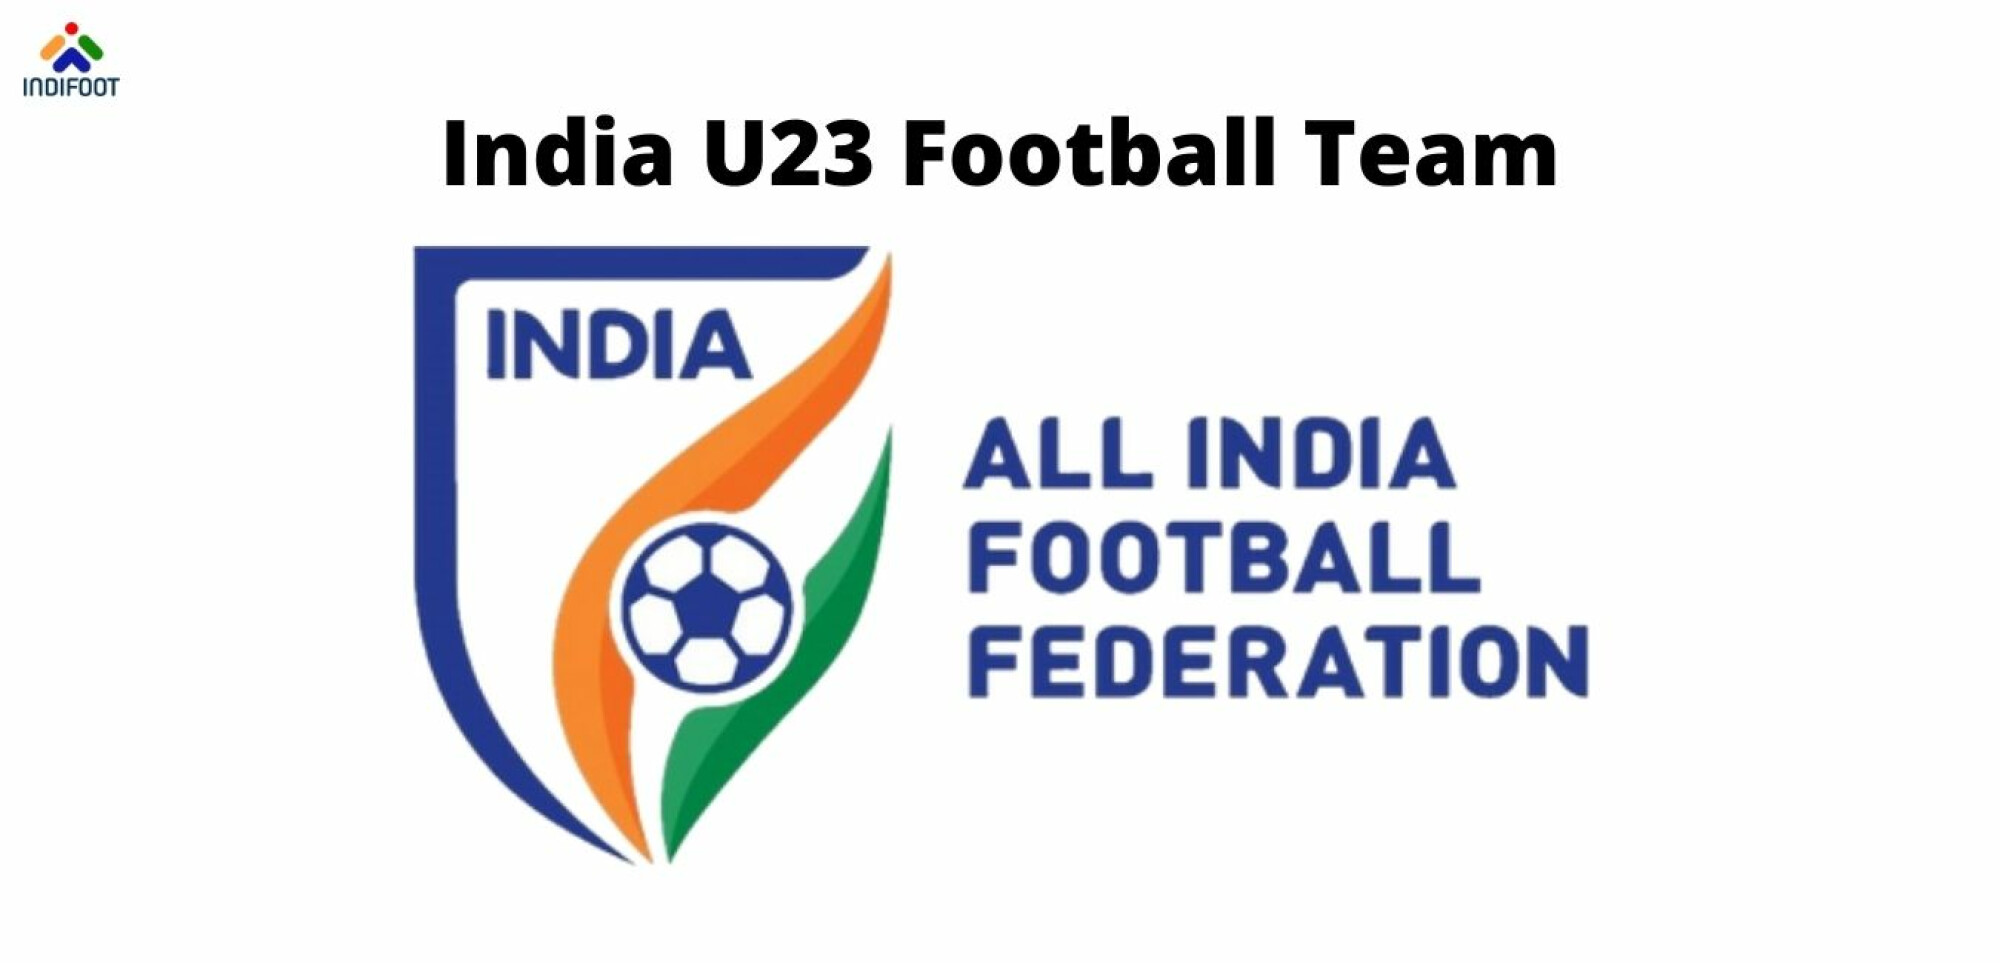 AFC U-23 Championship Qualifiers: What can India expect from their group?